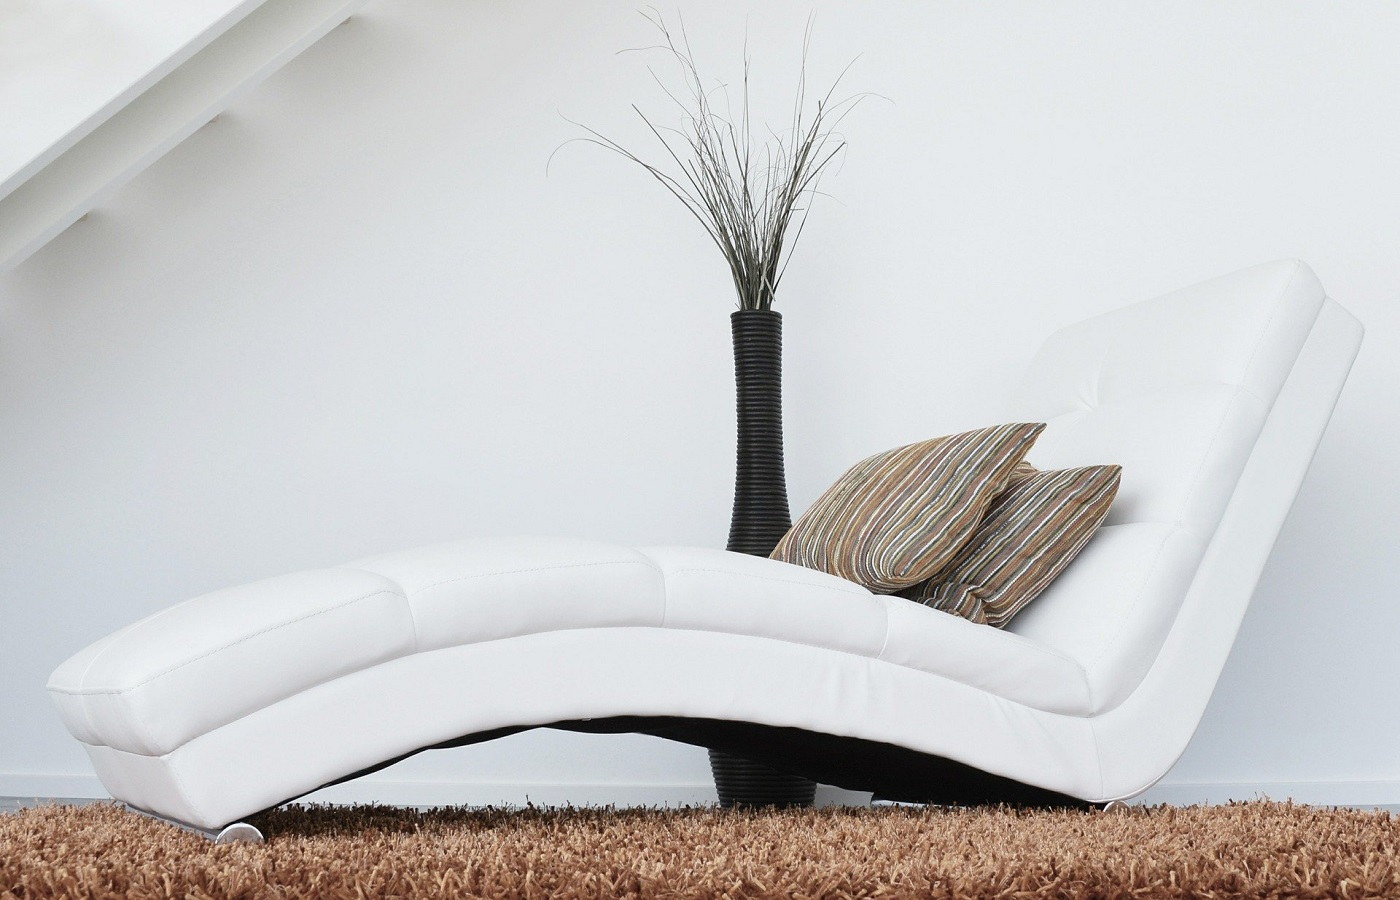 A white classic lounge chair with cushion